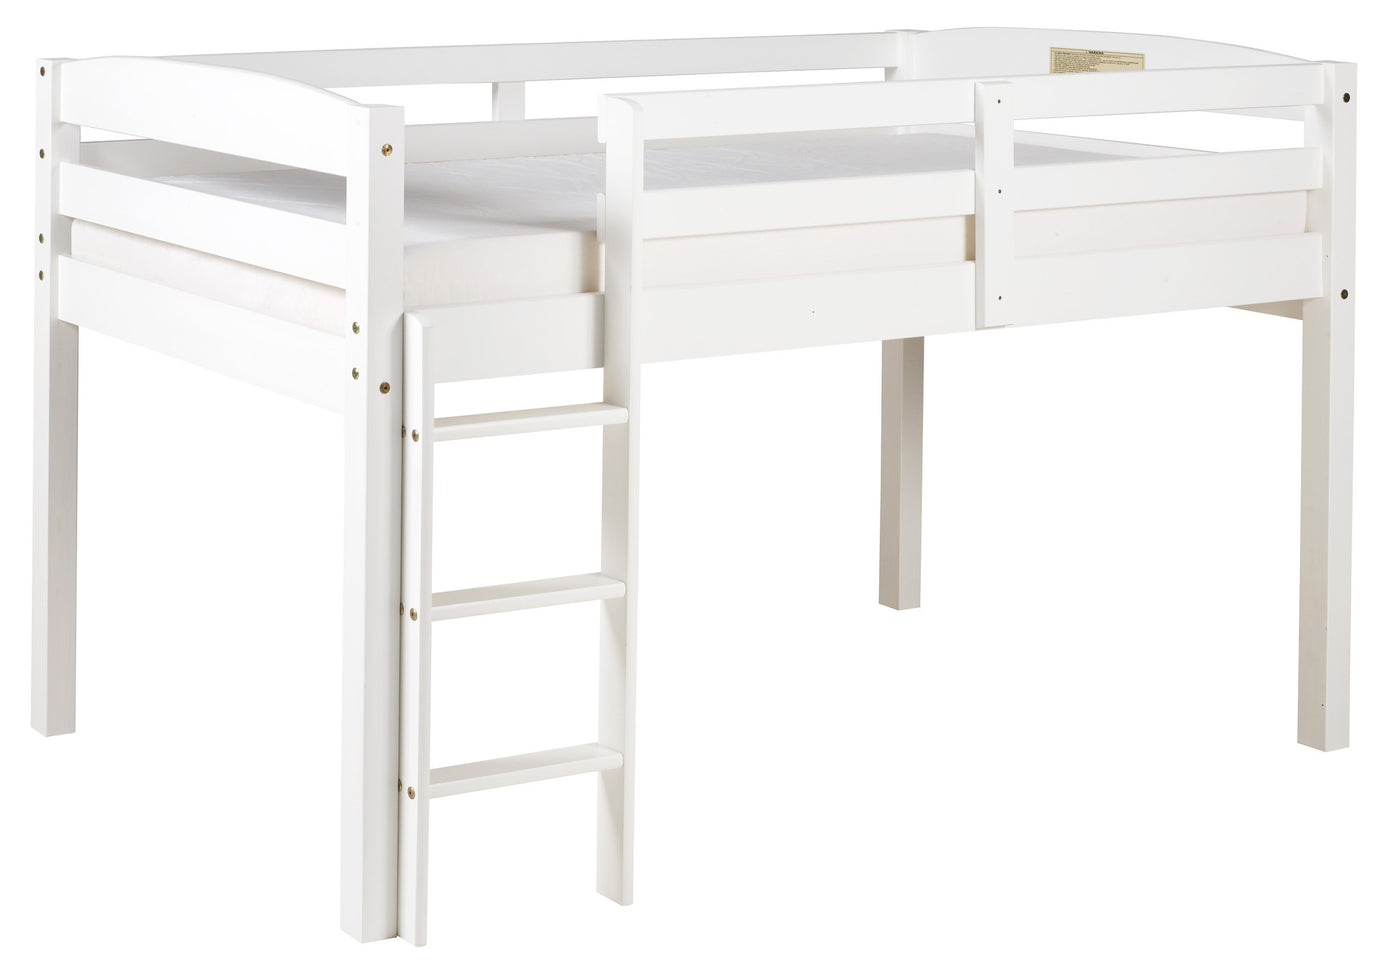 Picture of: Camaflexi Bunk Bed Mission Headboard Angle Ladder Hipbeds Com